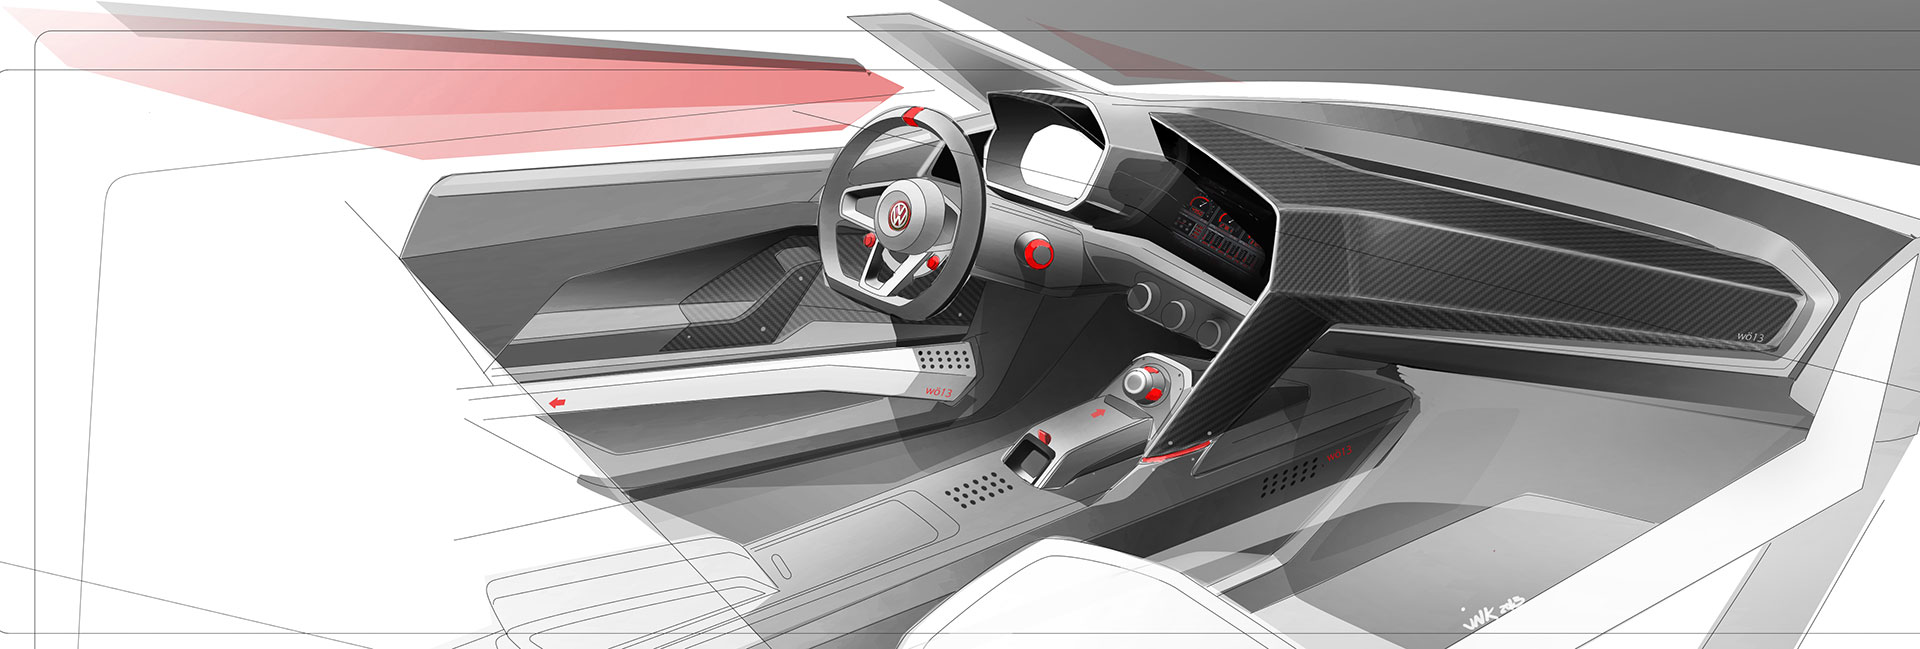 Volkswagen Design Vision Gti Interior Design Sketch Car